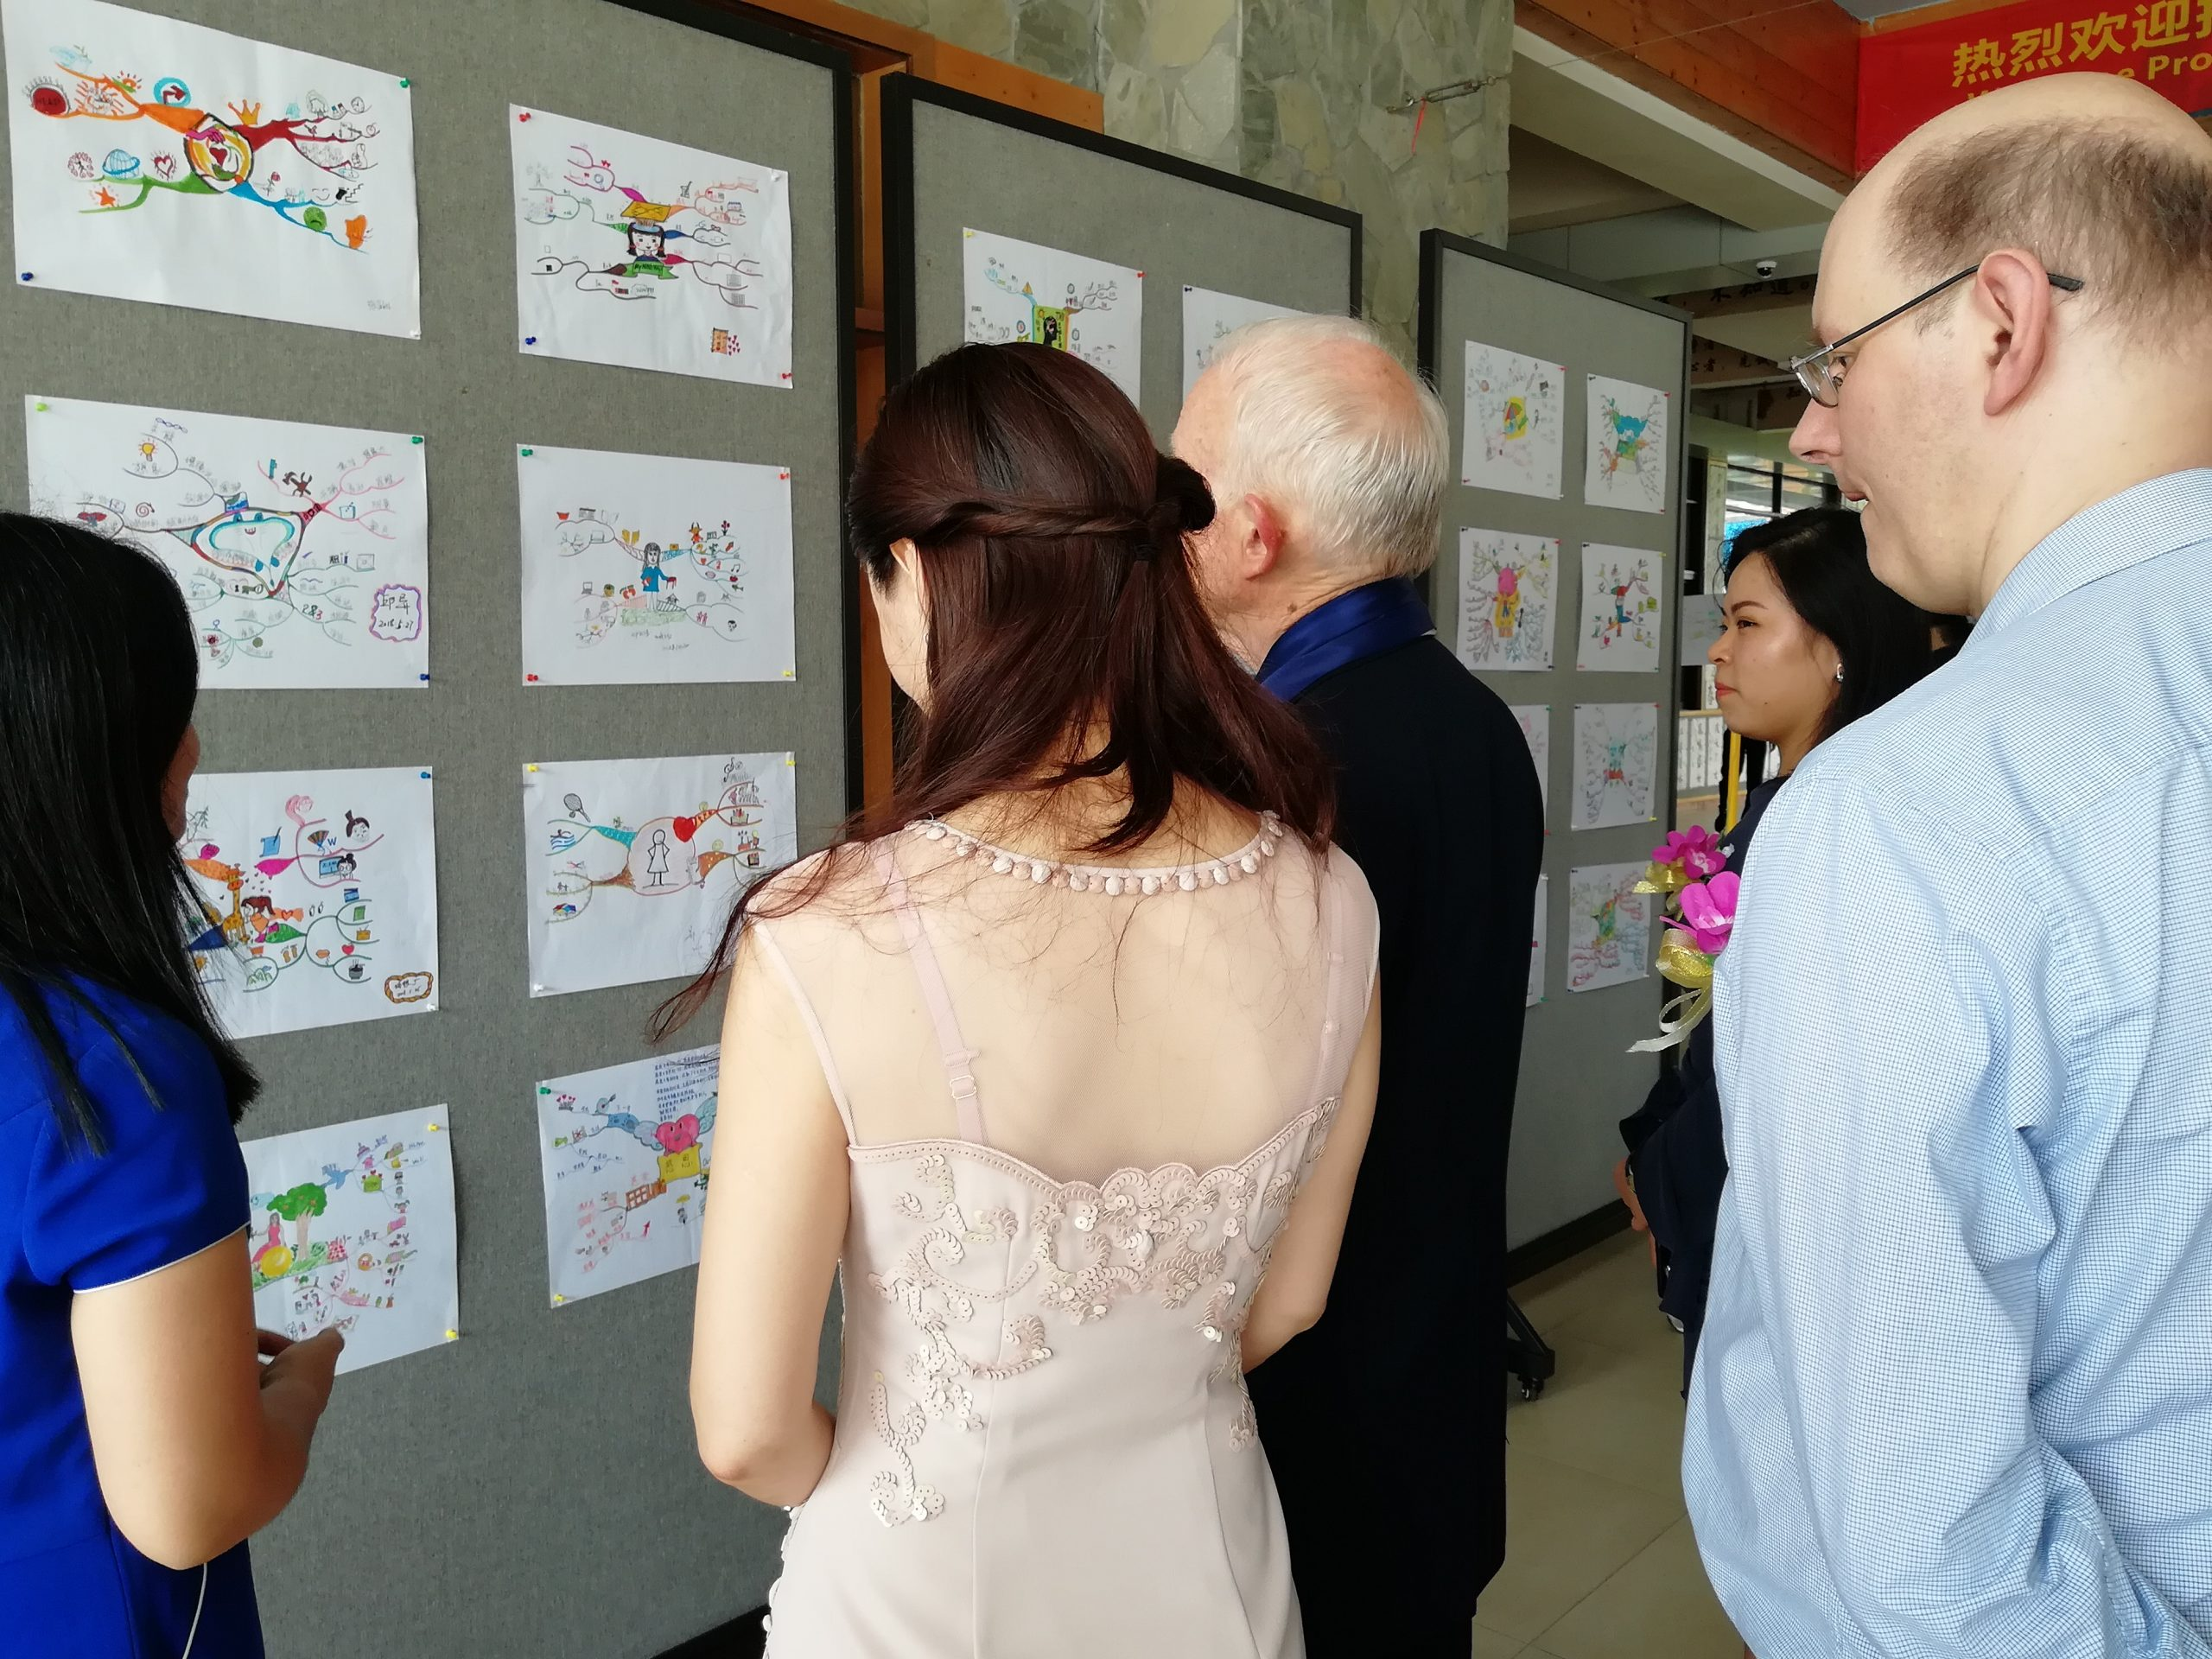 Tony Buzan Advanced Practitioners Course in Mind Mapping